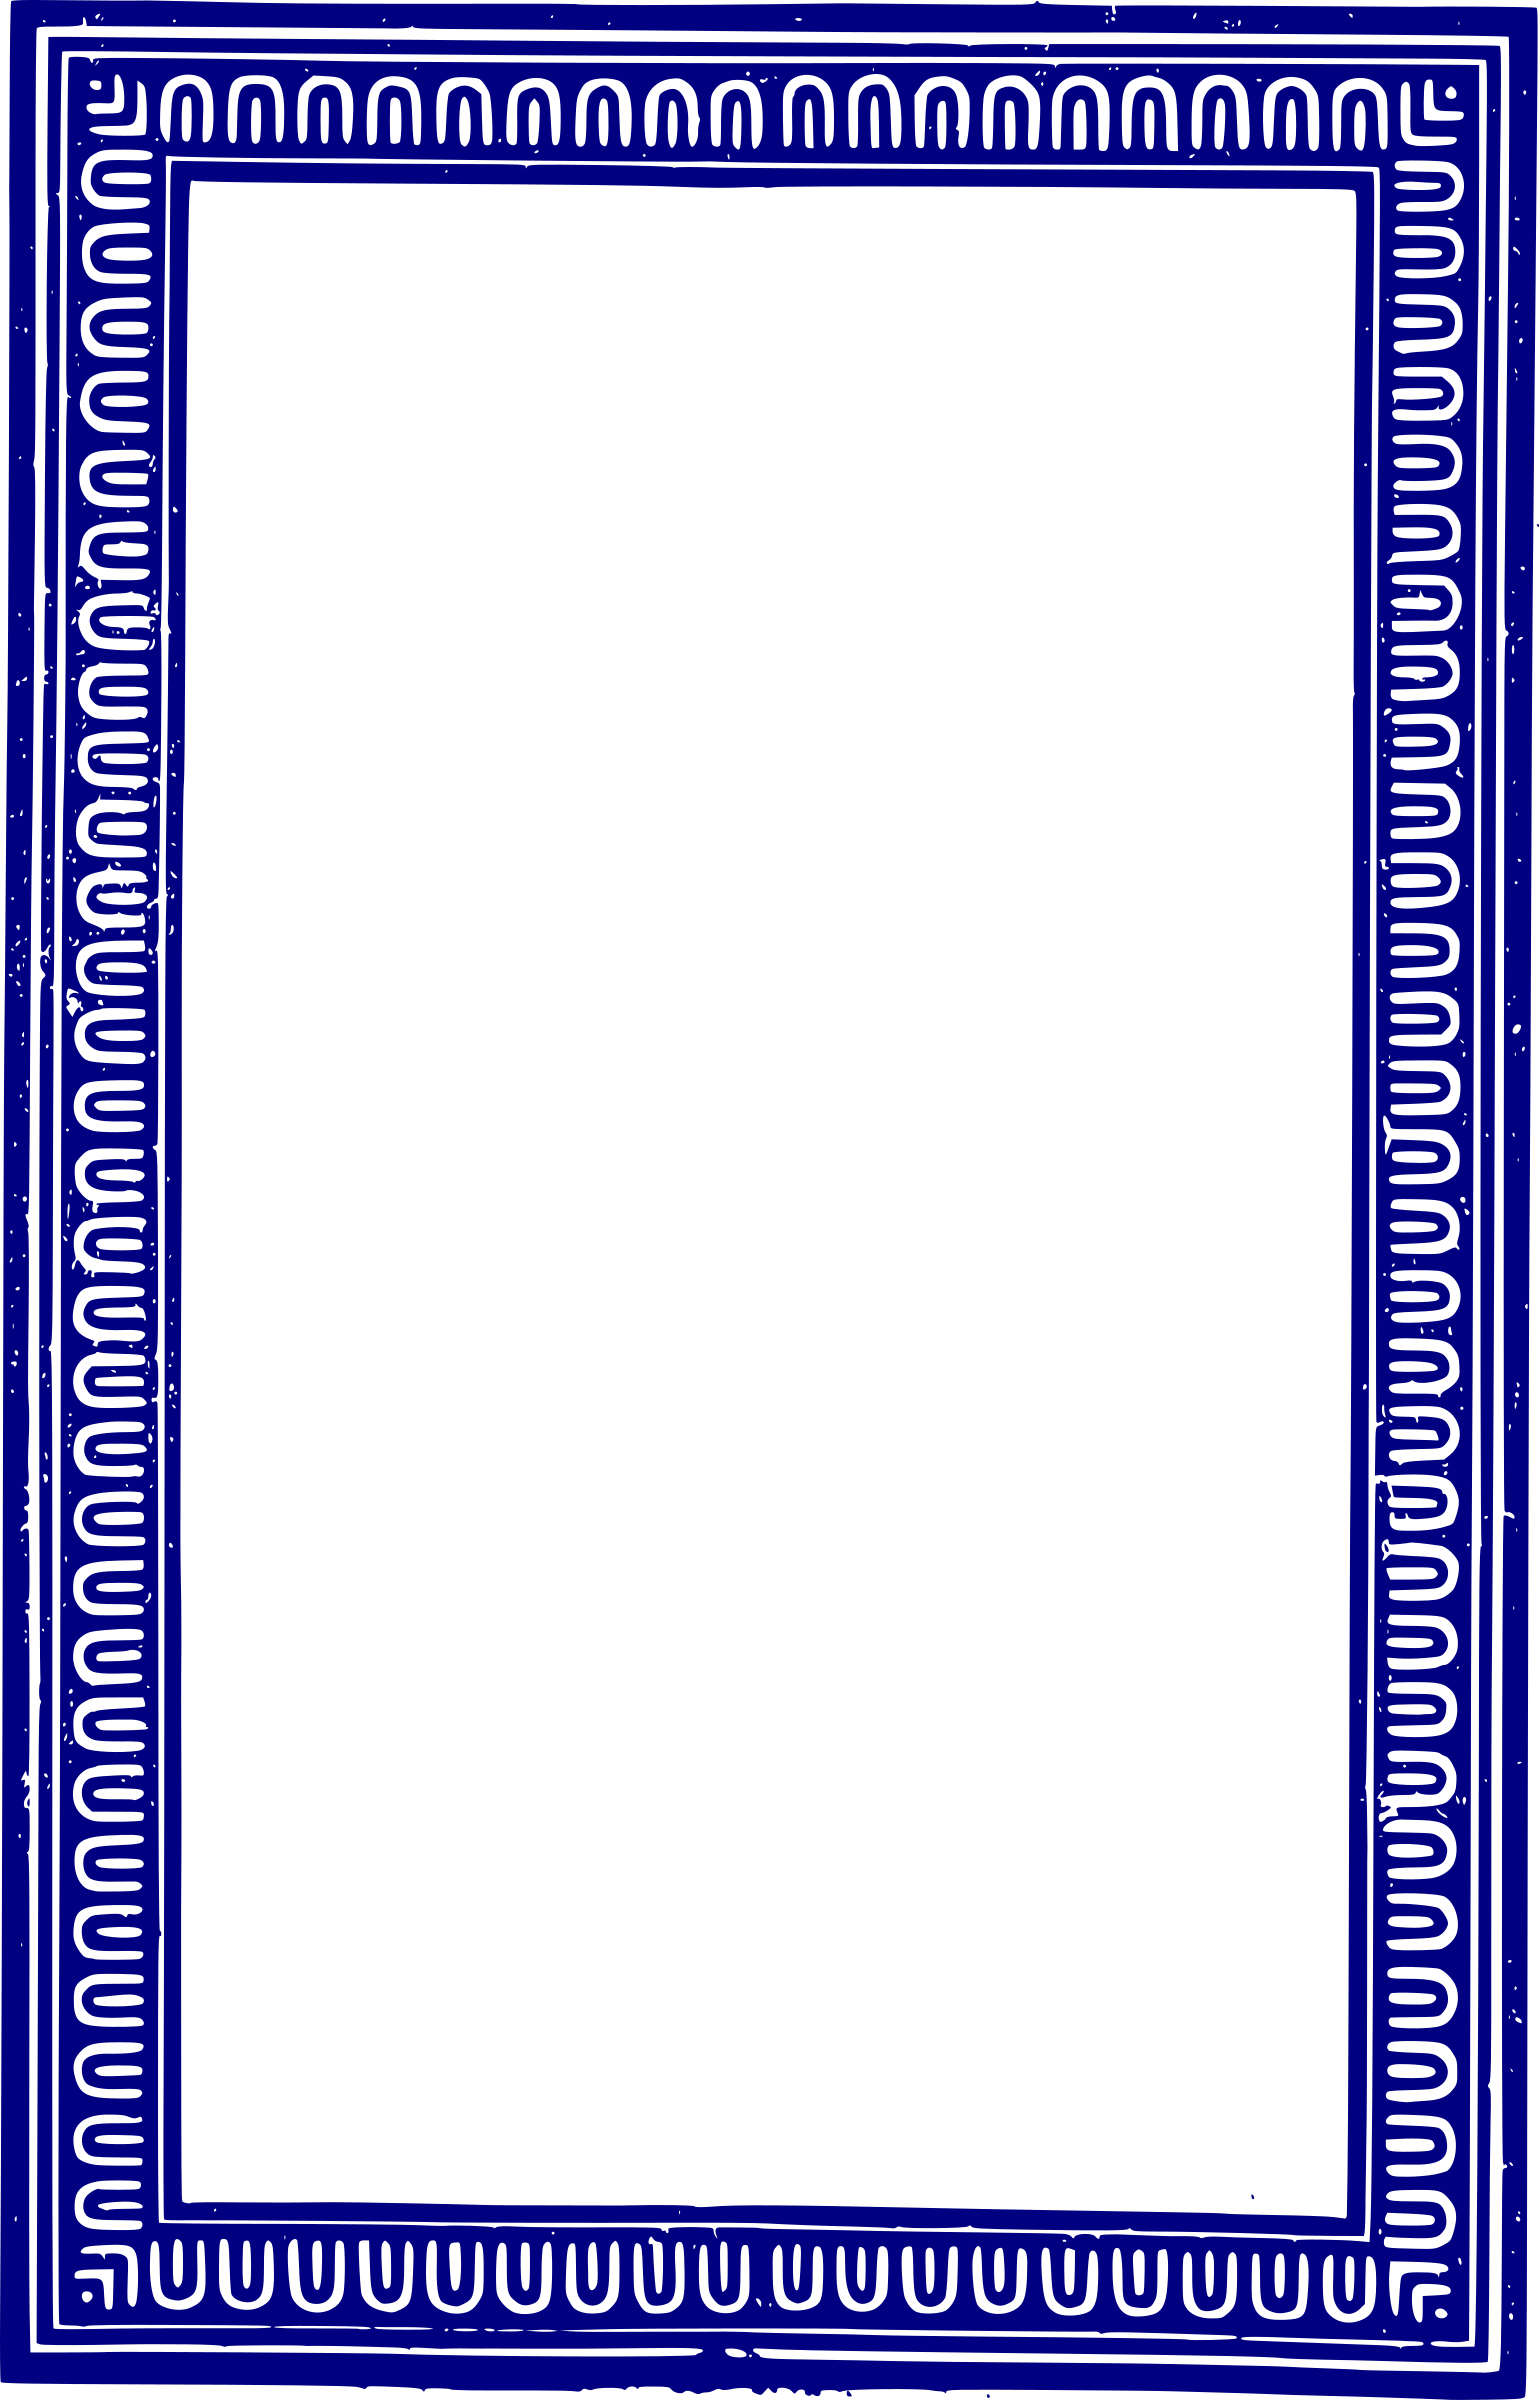 Navy clipart frame. Solid blue icons png